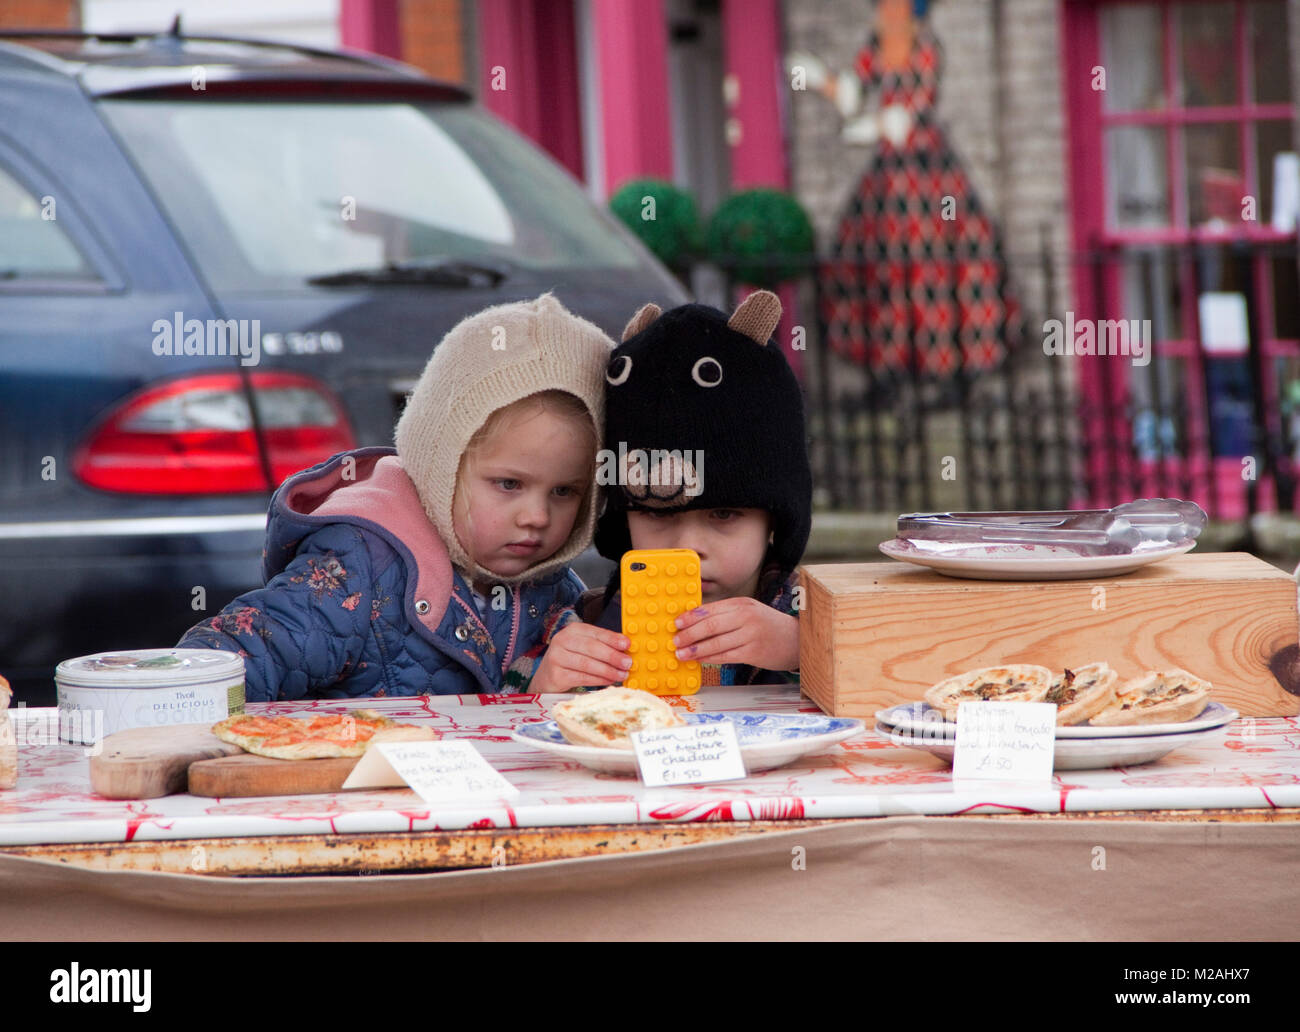 Two children in knitted balaclavas on a food stall messing with a bright yellow mobile phone - Stock Image